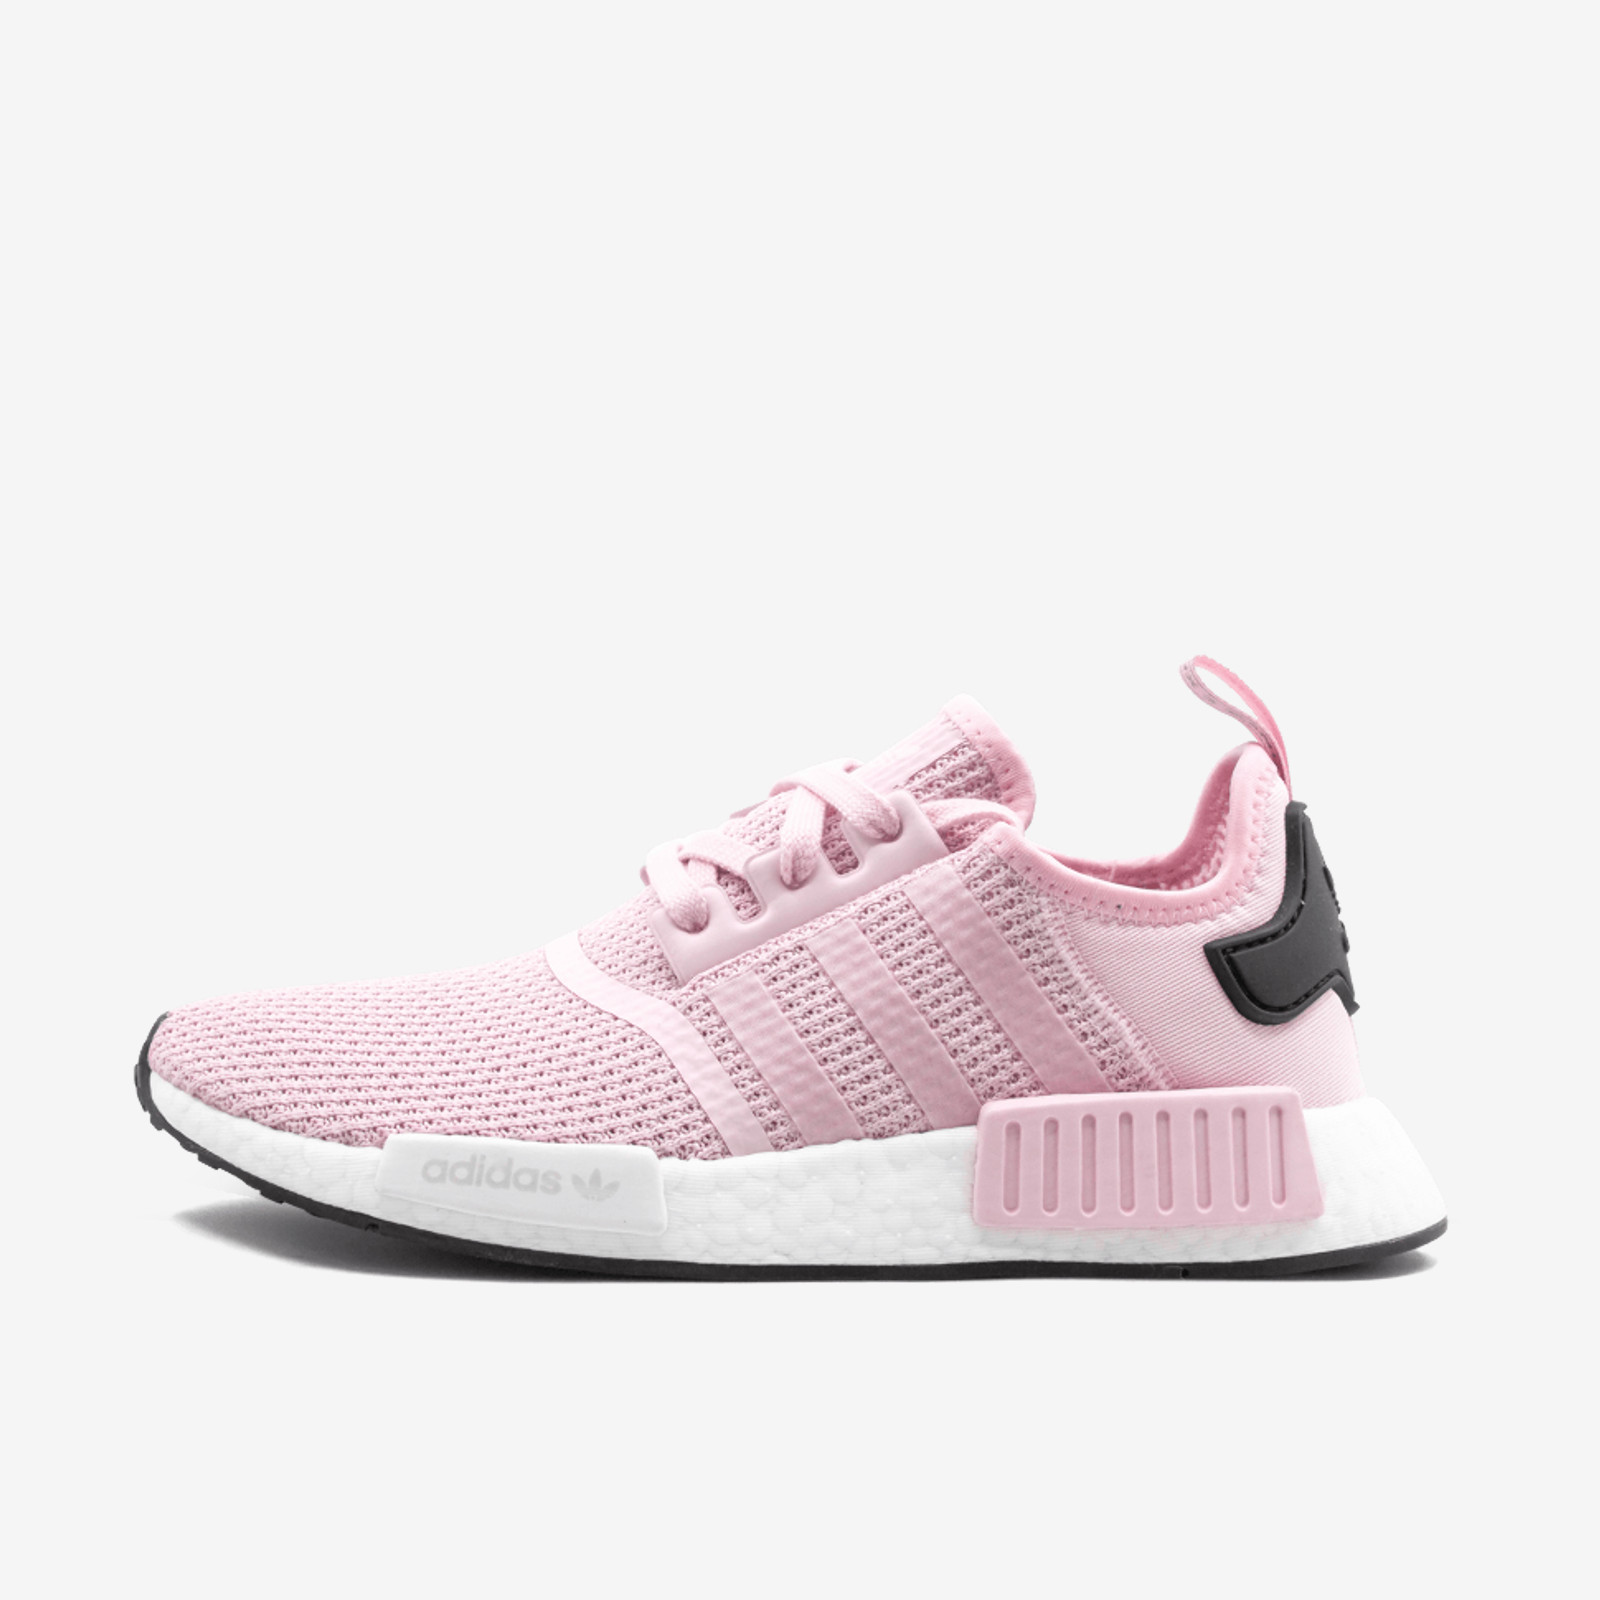 6dc105c9a2657 Details about ADIDAS NMD R1 B37648 CLEAR PINK FOOTWEAR WHITE CORE BLACK